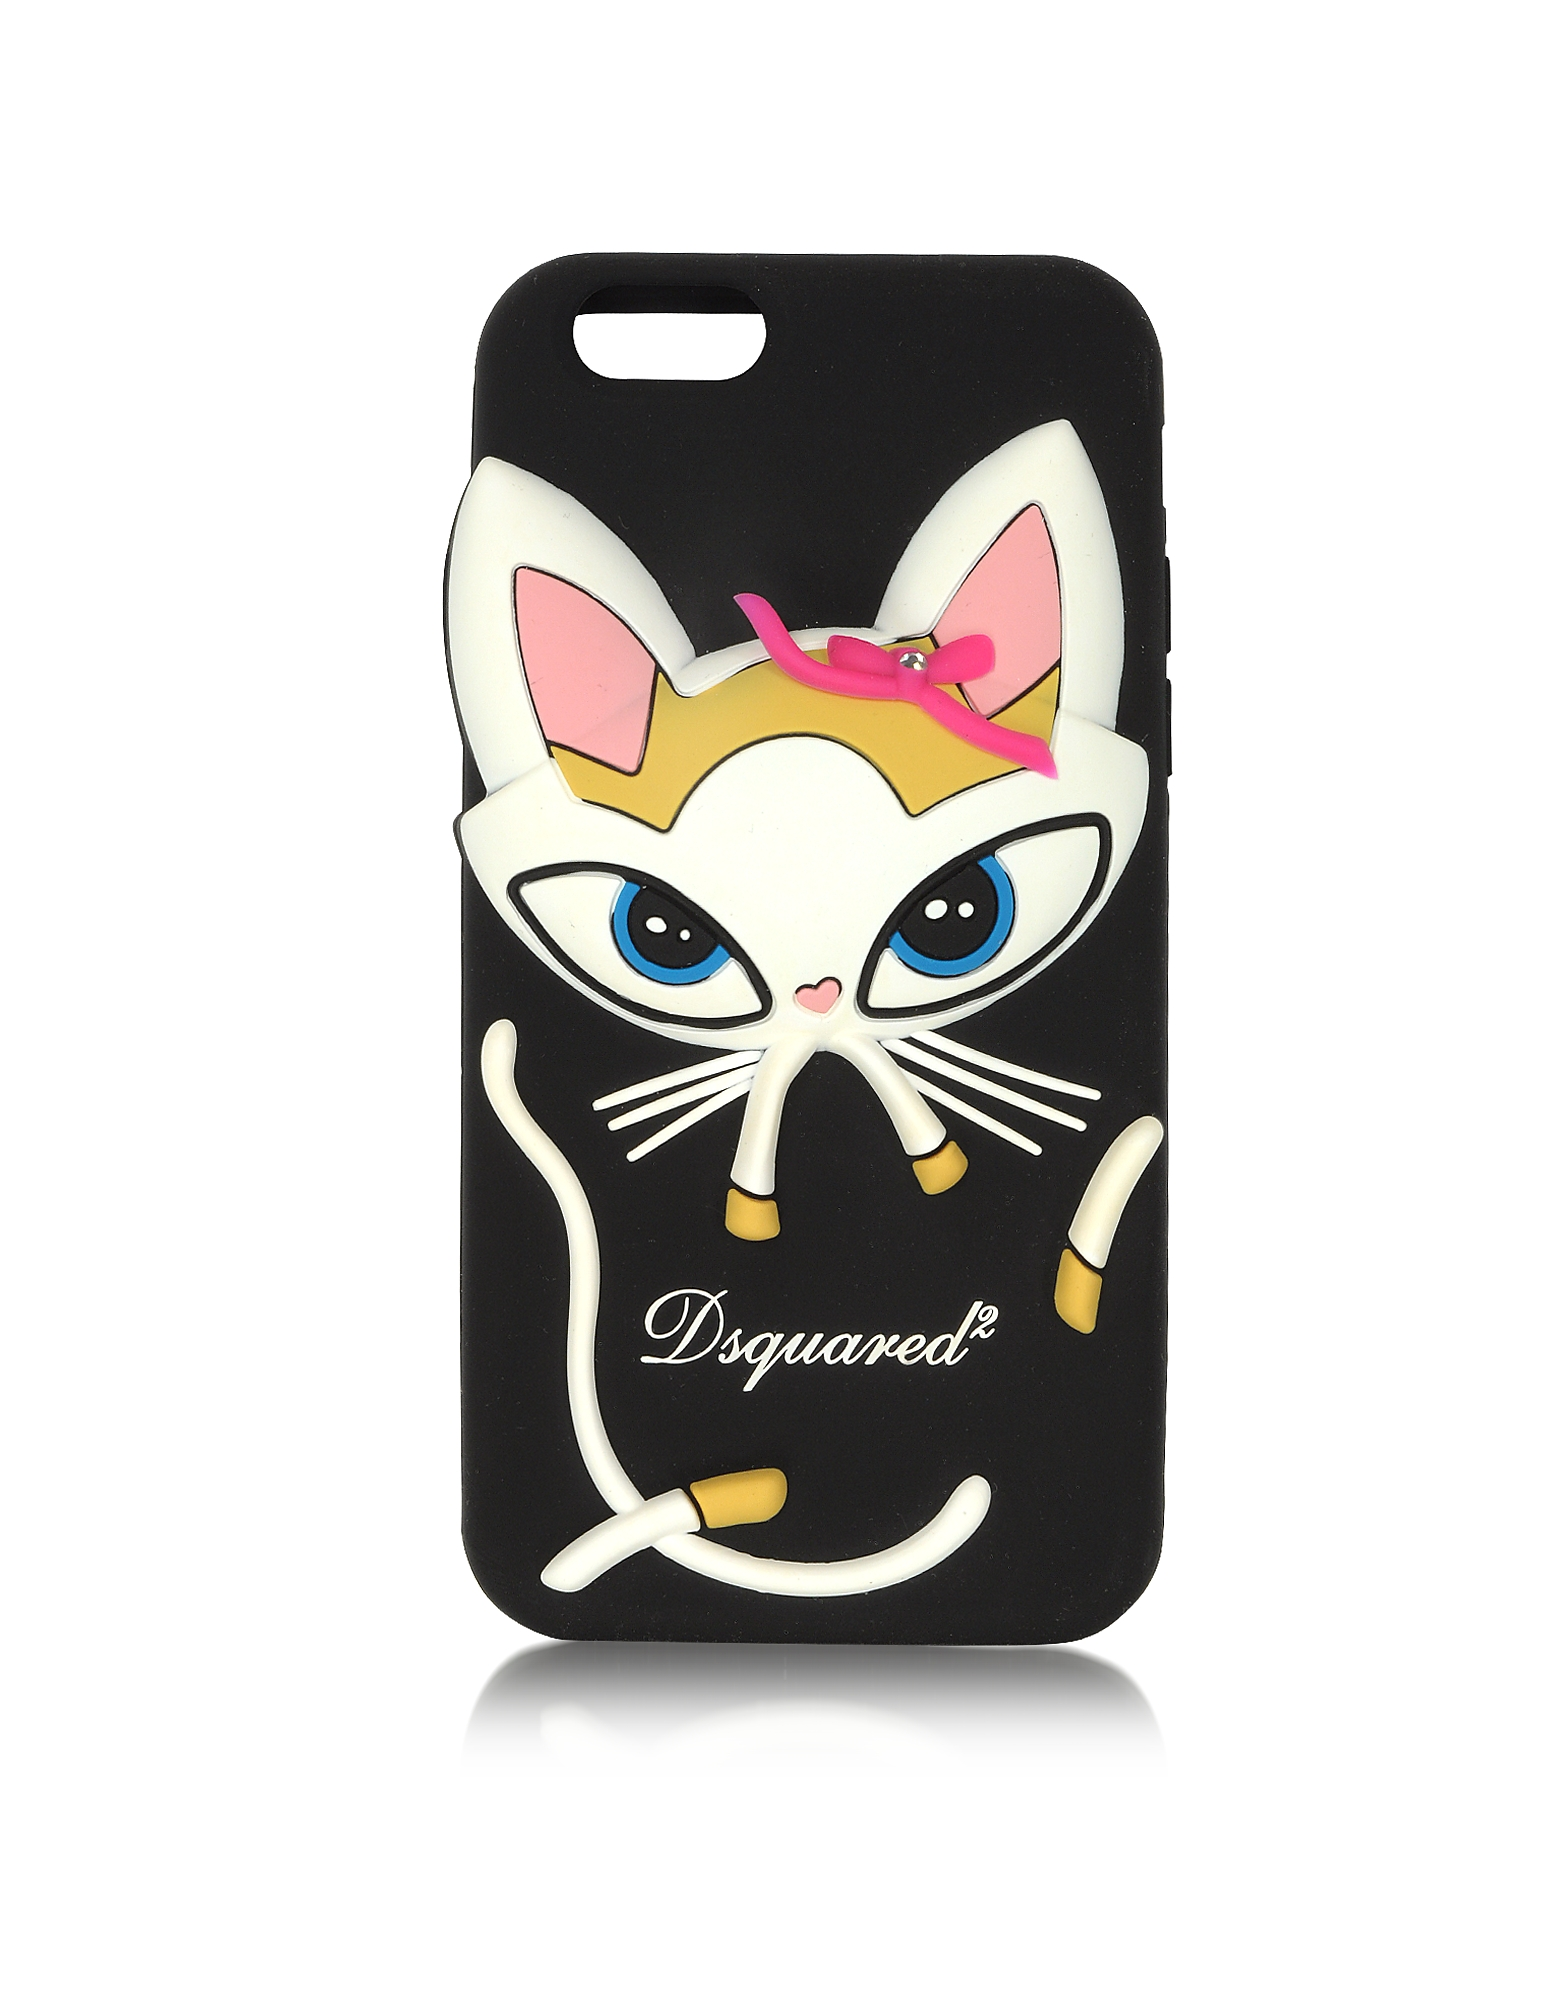 DSquared2 Handbags, Black Silicone iPhone 6 Cover w/Cat